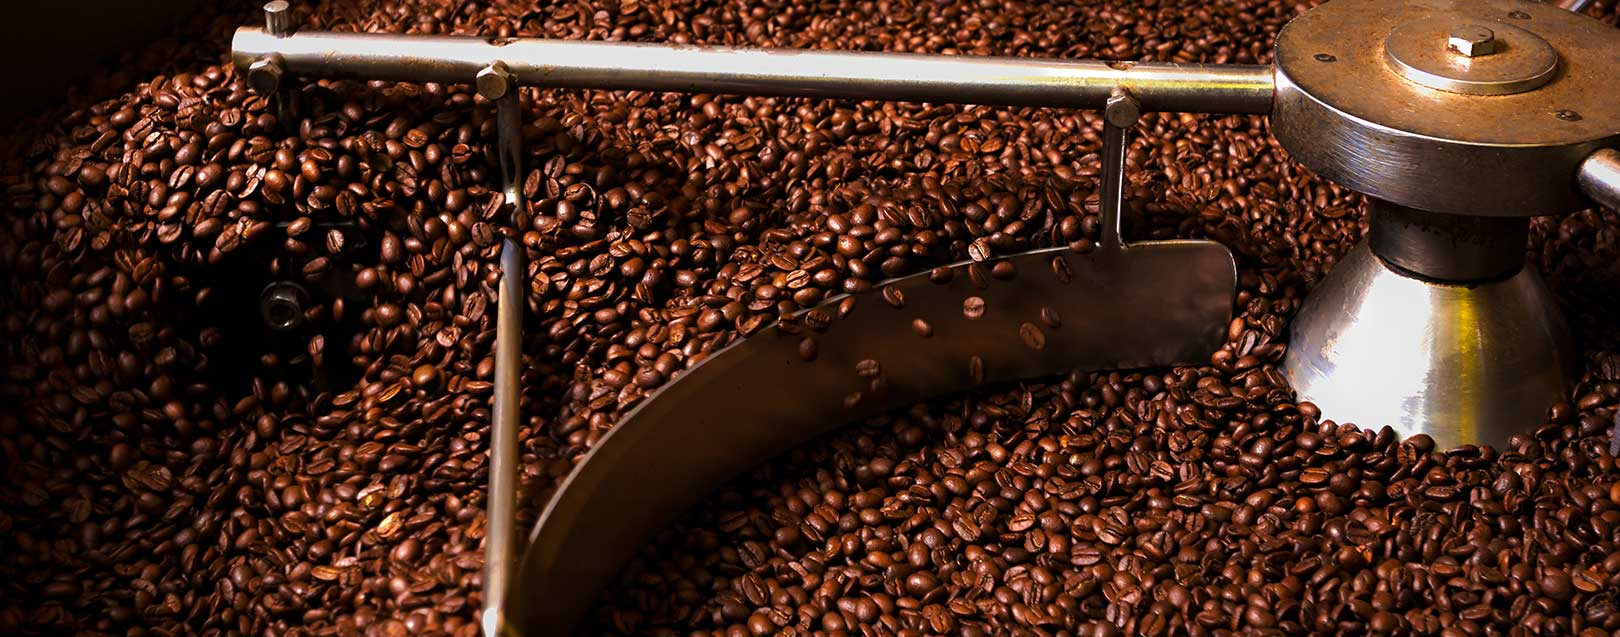 India cuts coffee production estimate for 2016-17 by 1%